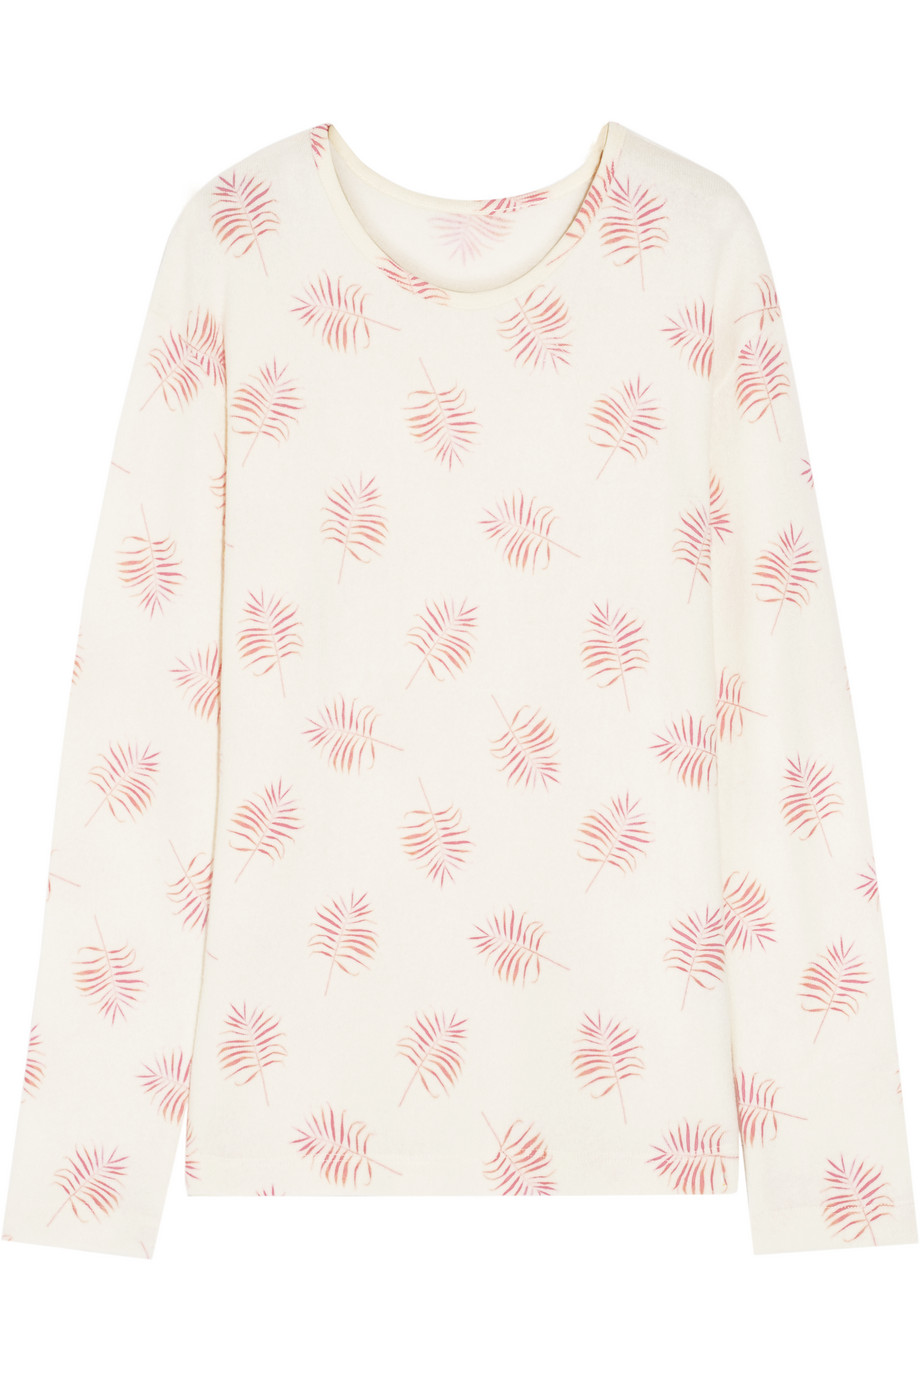 Printed Cashmere Sweater, The Elder Statesman, Cream, Women's